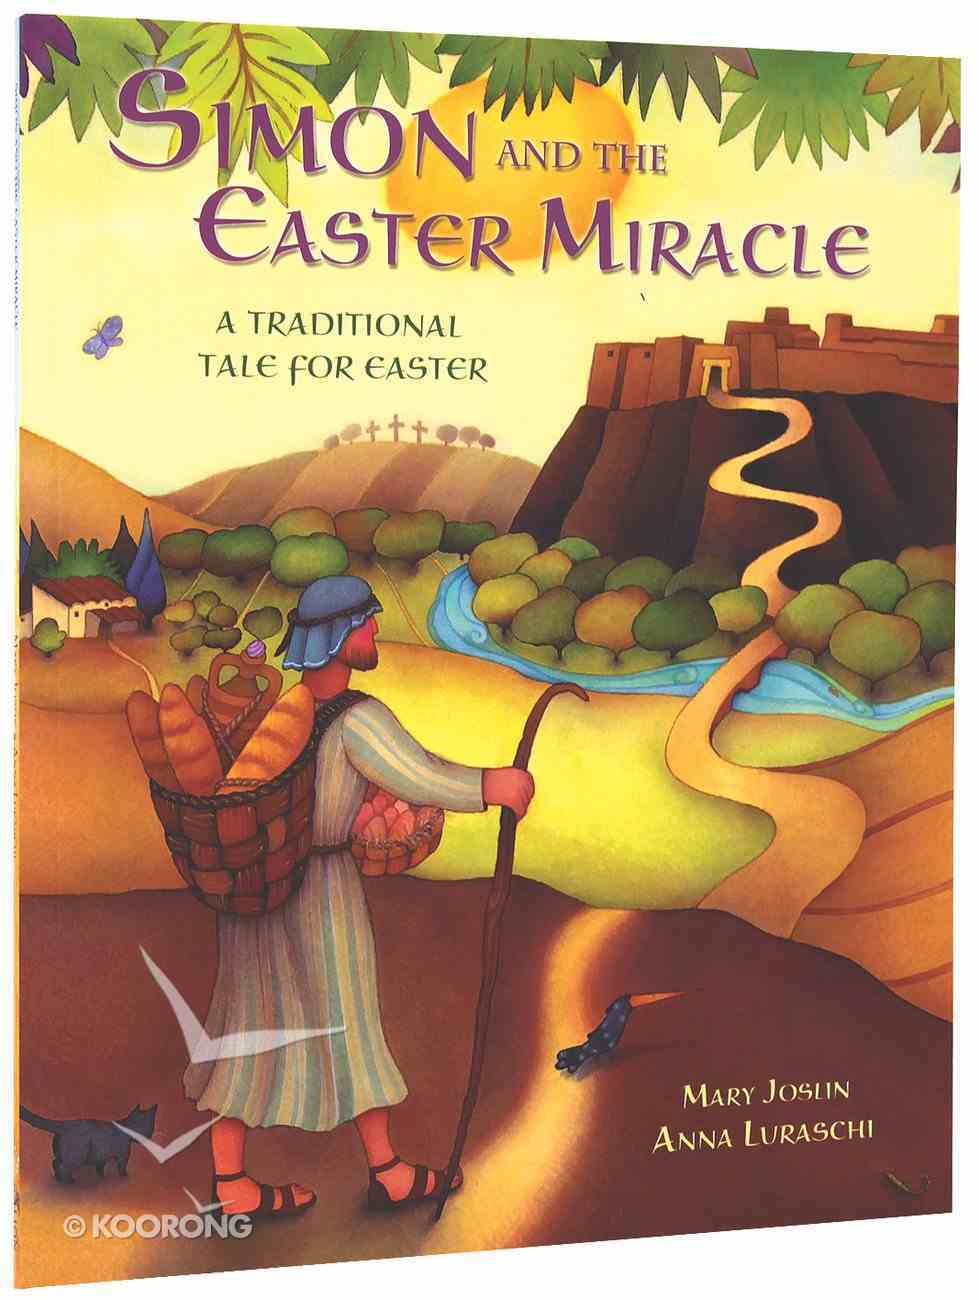 Simon and the Easter Miracle Paperback